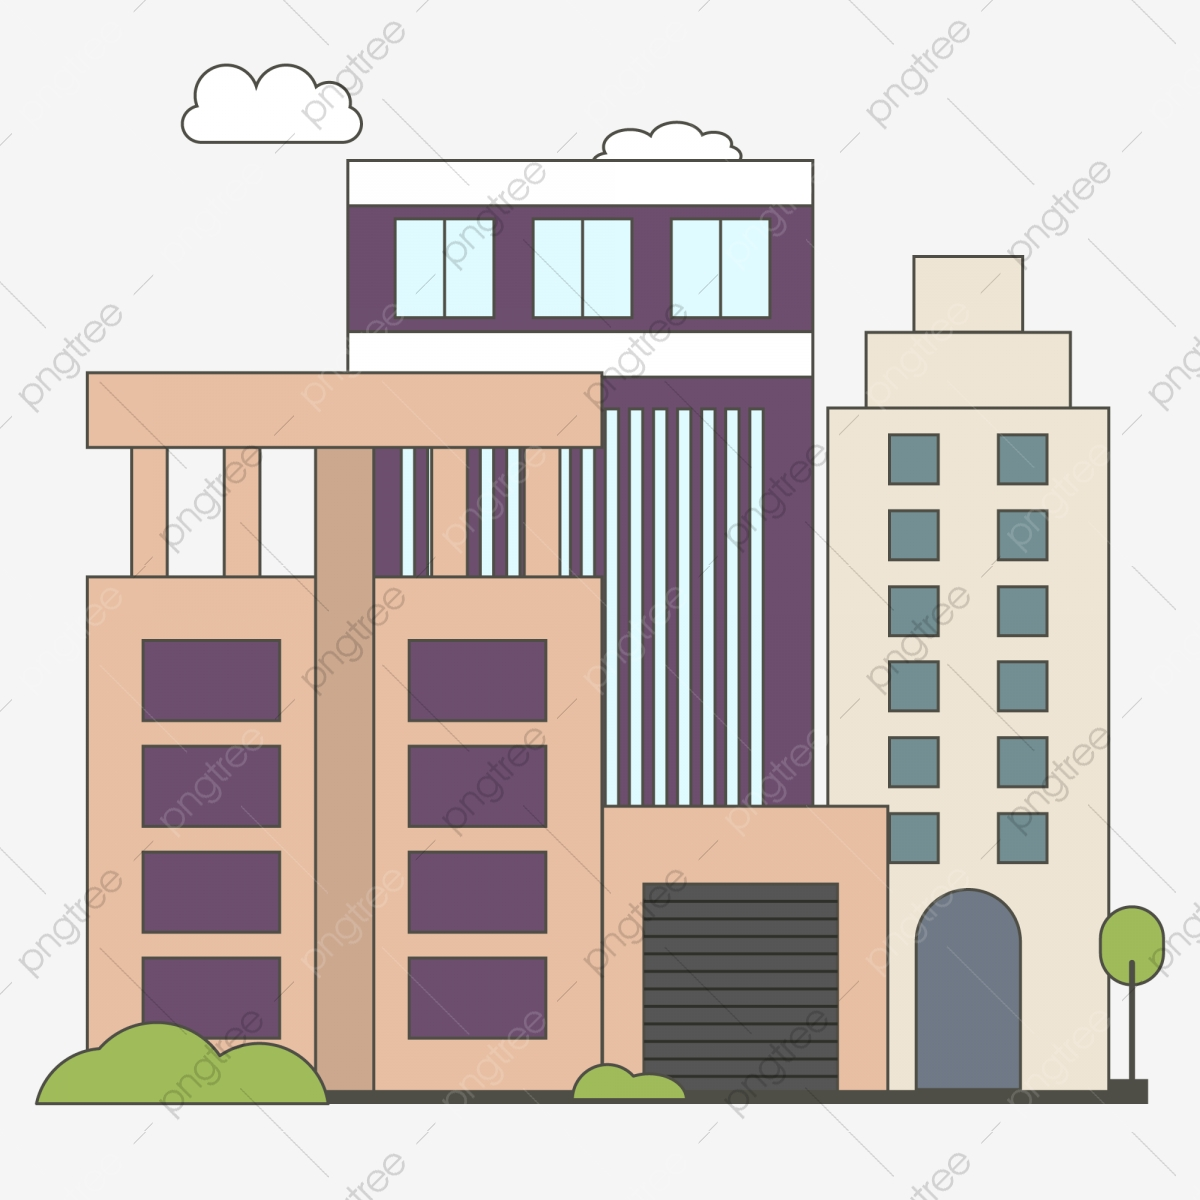 Cartoon Wind City Office Building Greening Office Building City Property Apartment City Building Png And Vector With Transparent Background For Free Download